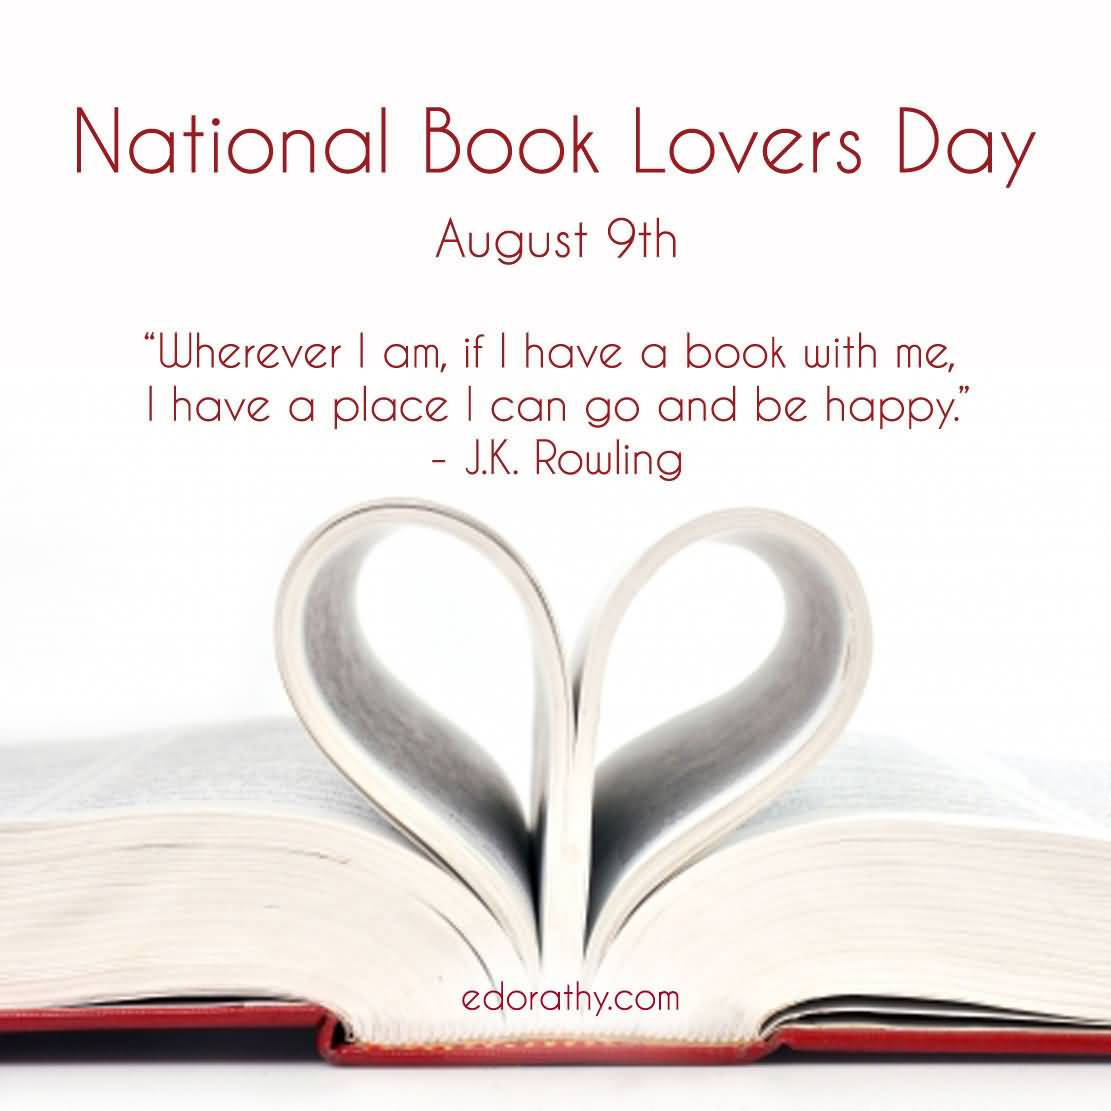 46-Book Lovers Day Wishes